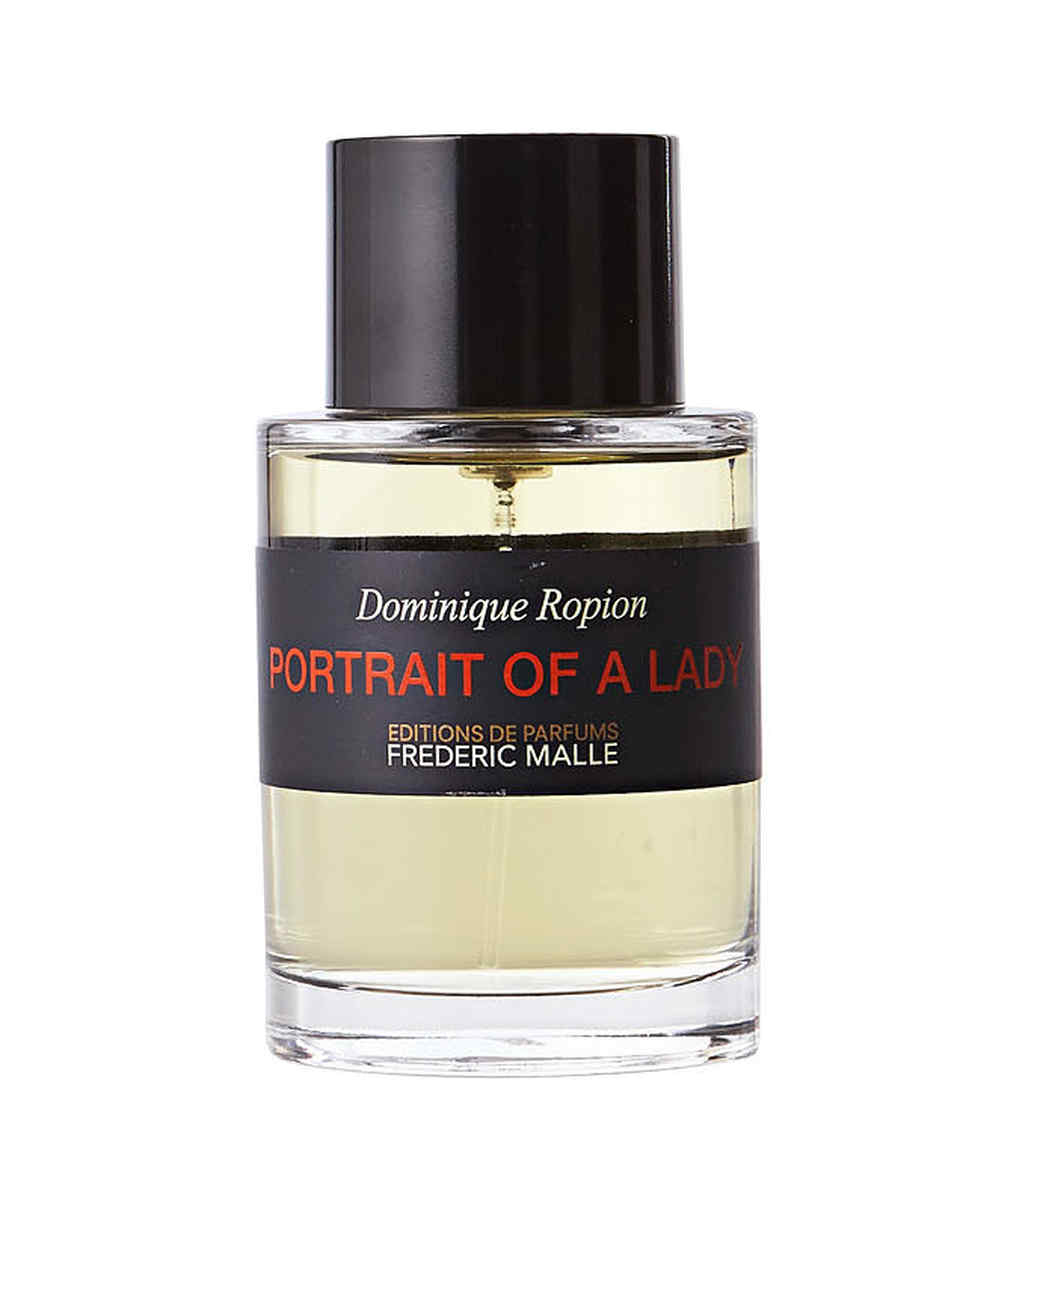 Portrait of a Lady by Frederic Malle scent